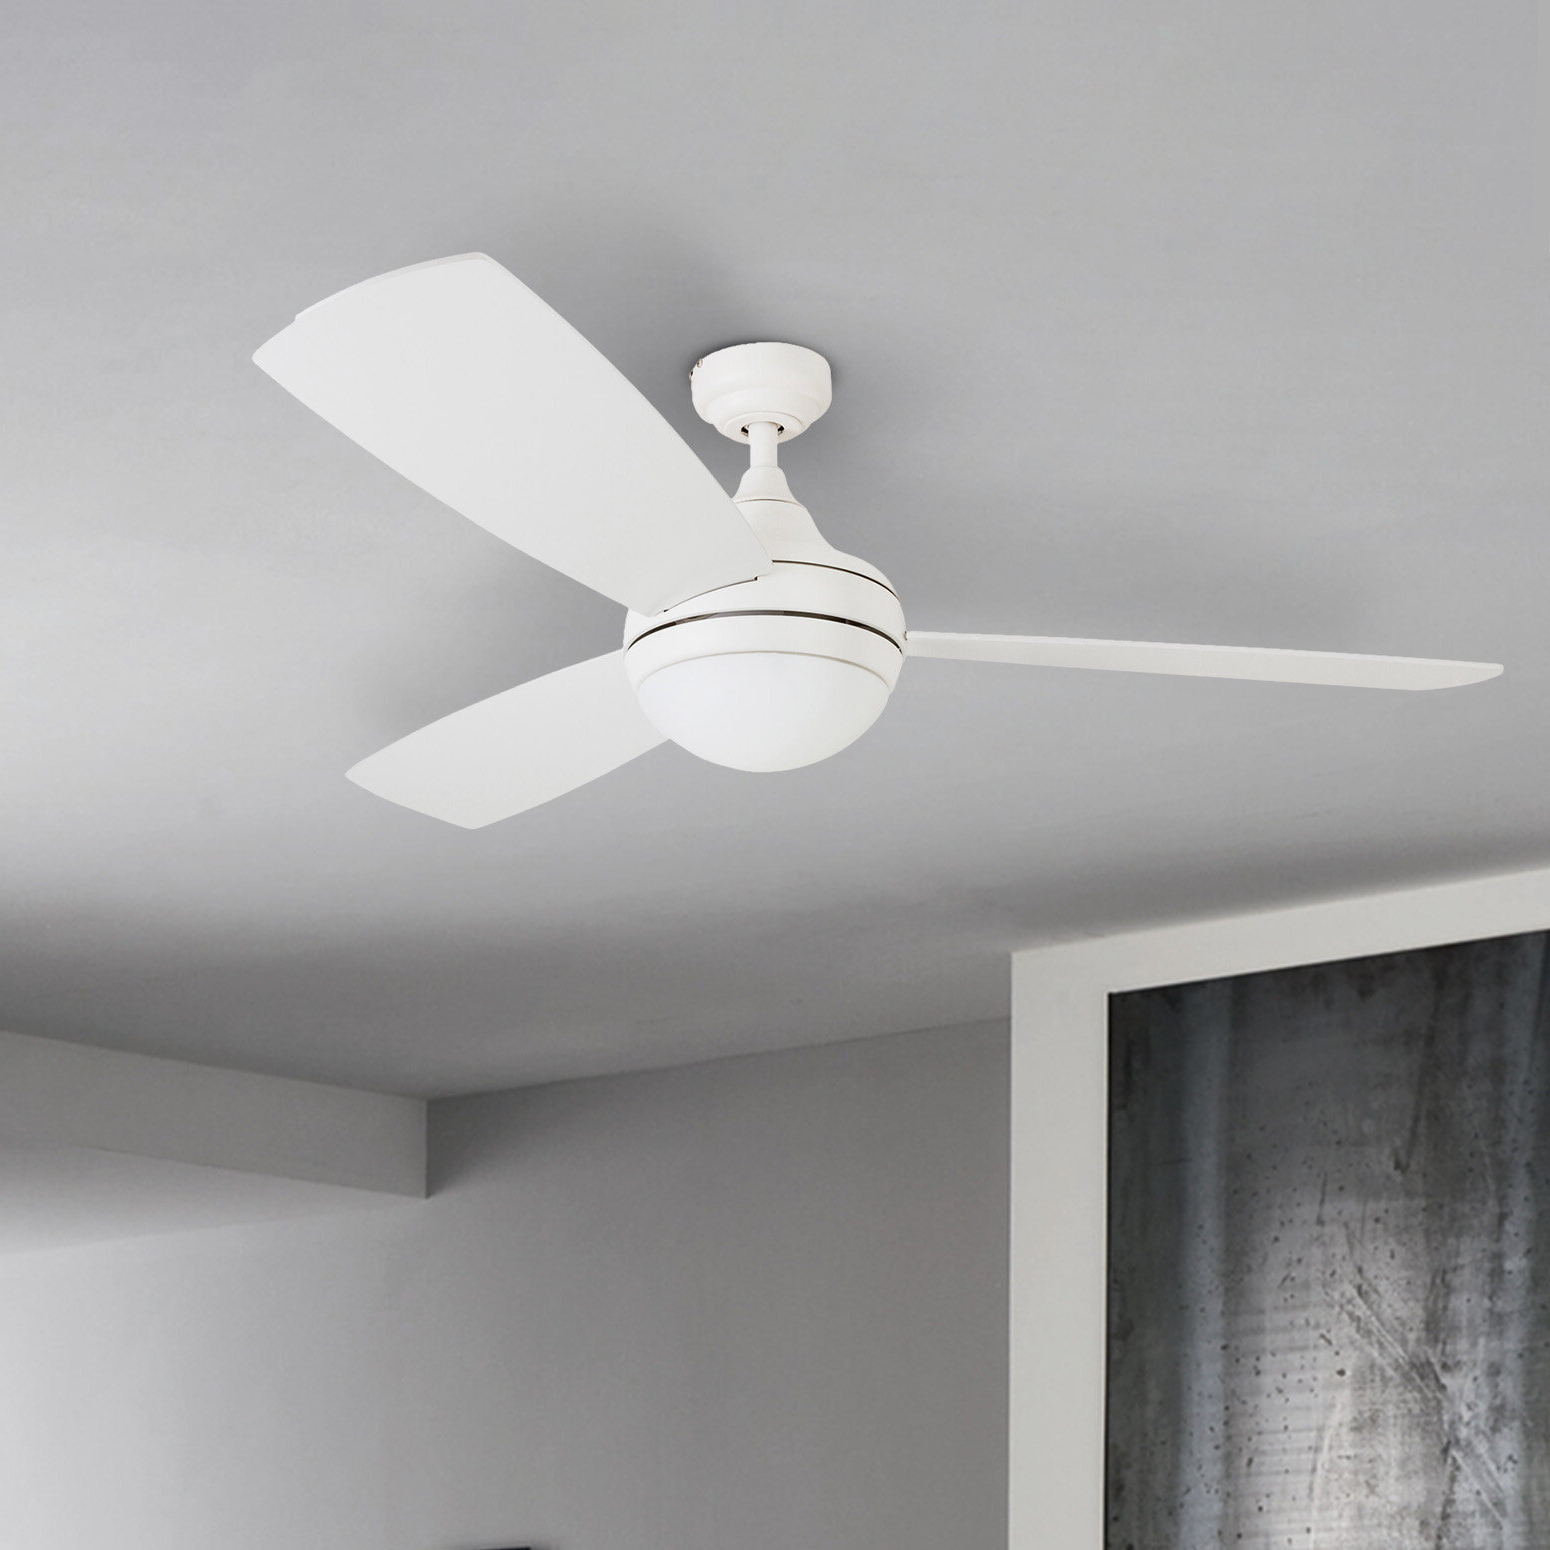 "Famous 52"" Alyce 3 Blade Led Ceiling Fan With Remote Control Within Alyce 3 Blade Led Ceiling Fans With Remote Control (View 11 of 20)"